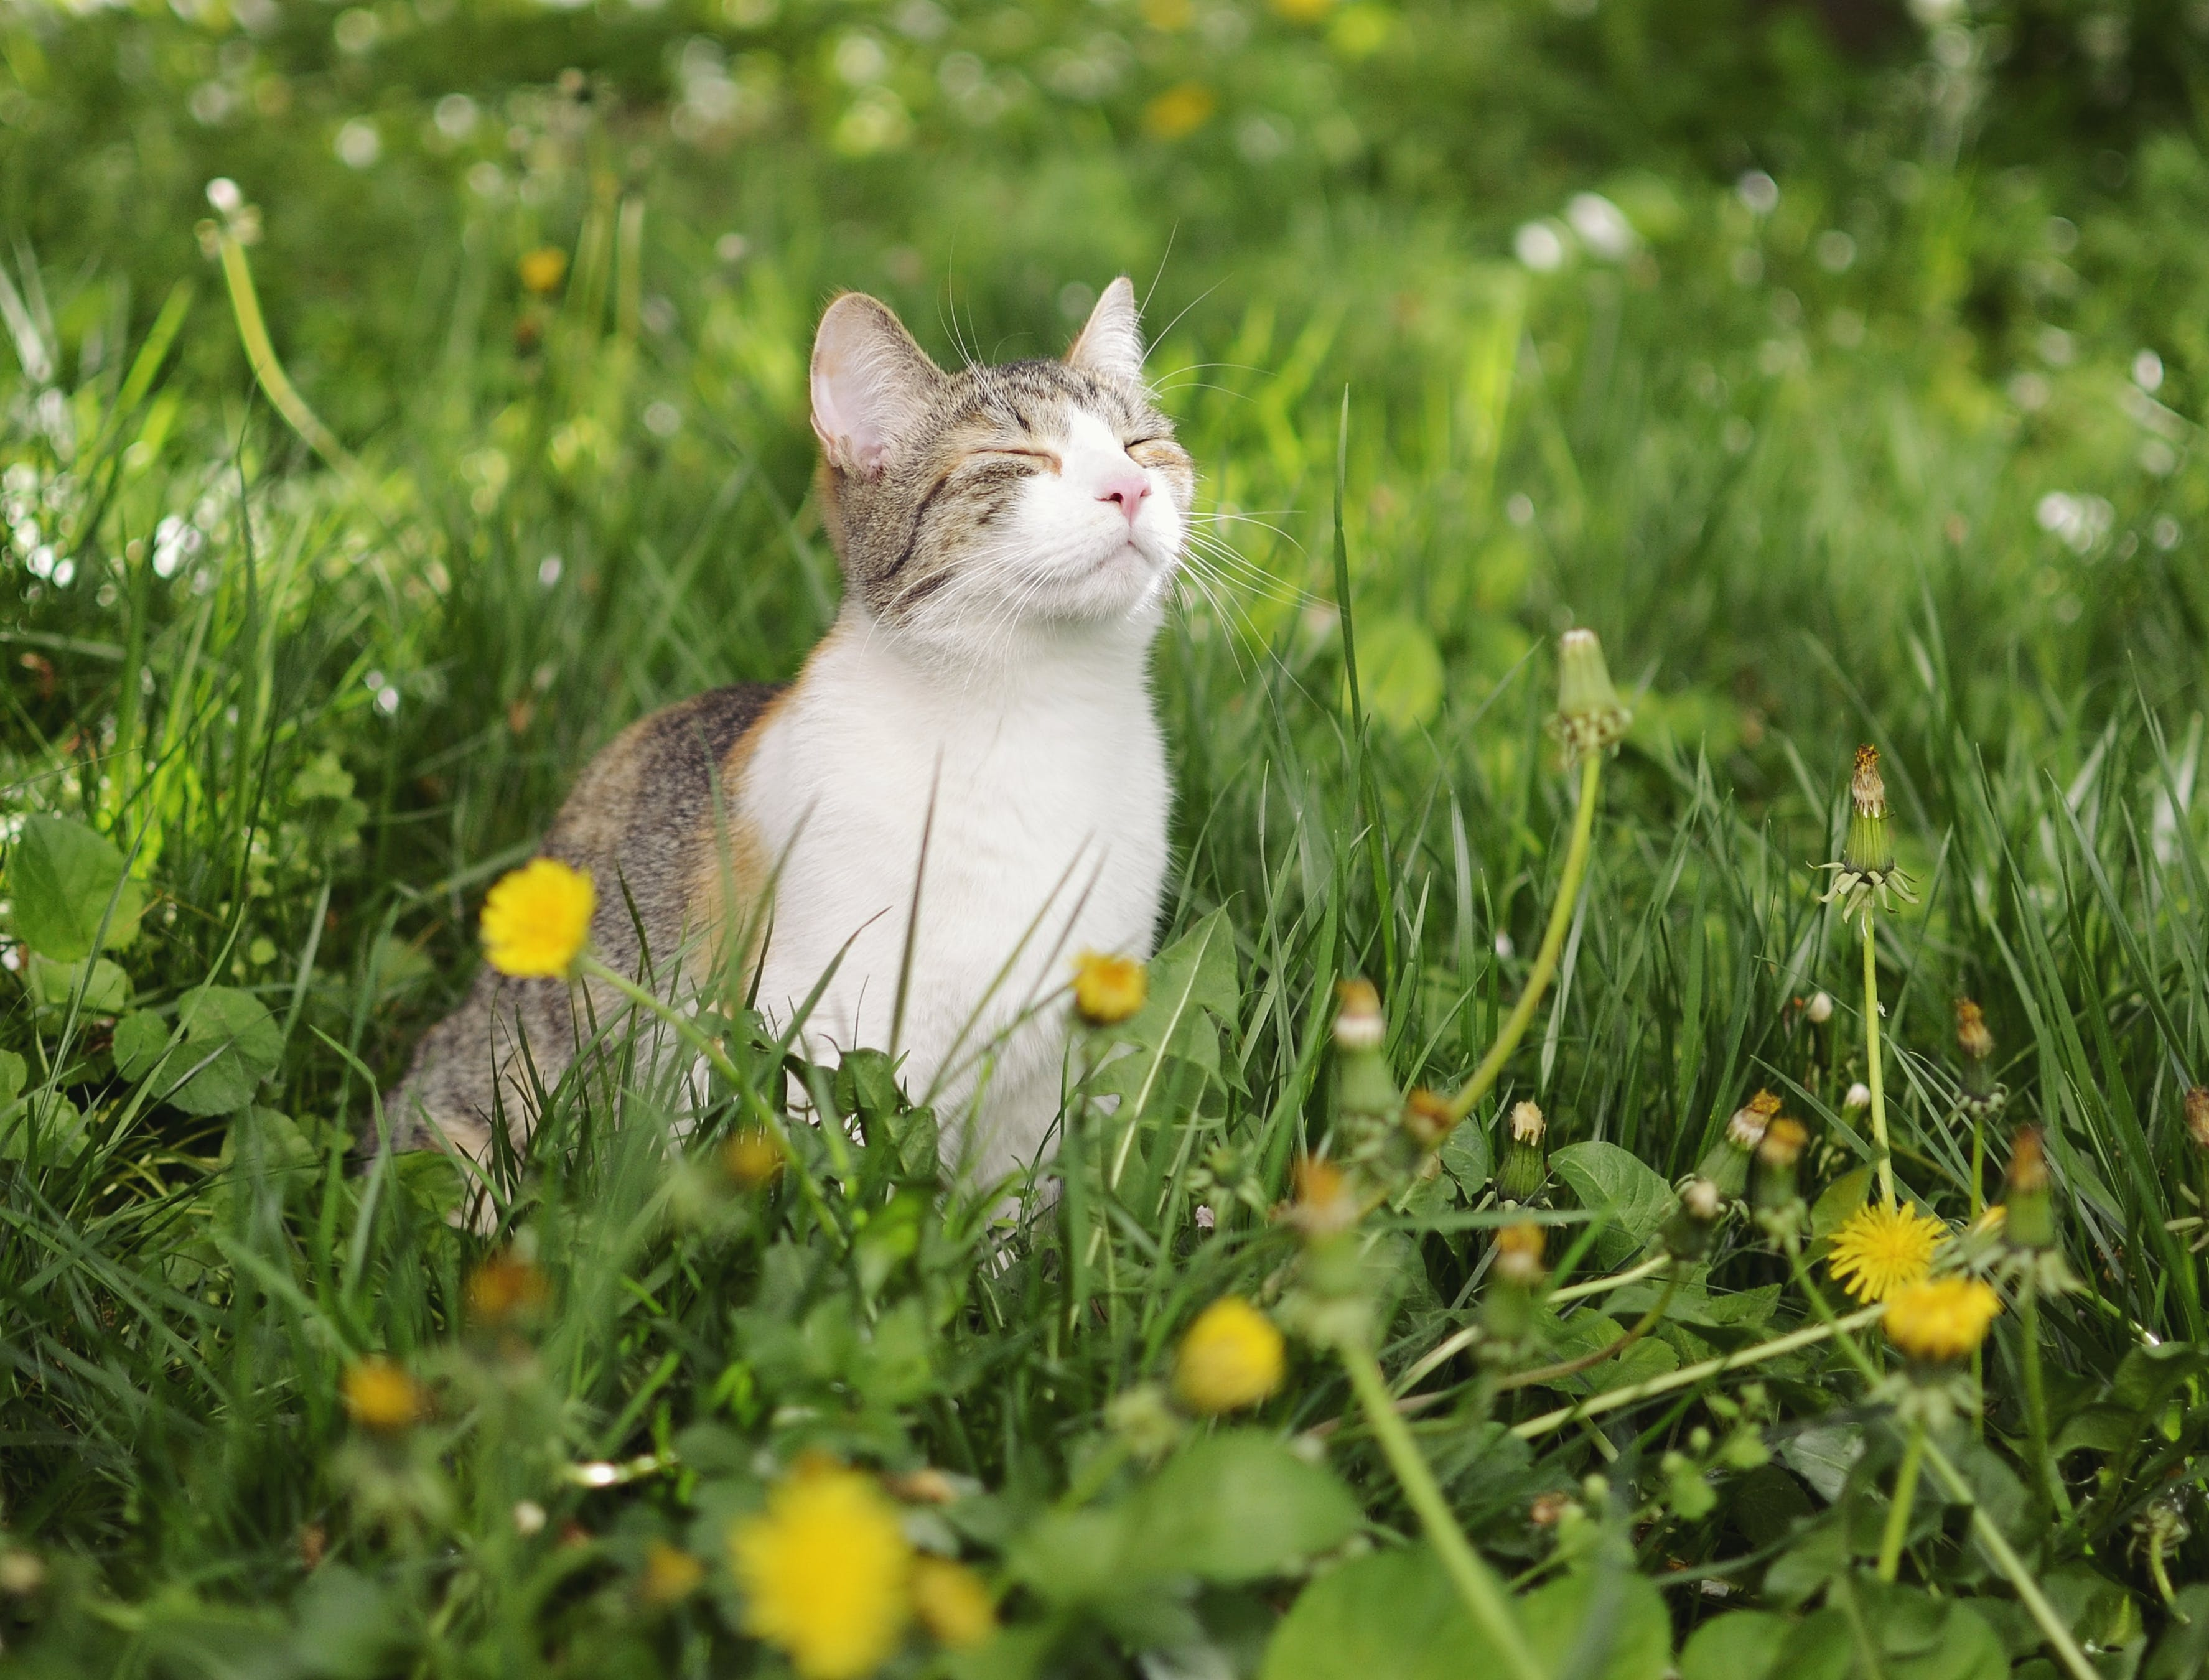 Free stock photo of cat, dandelion, grass, green